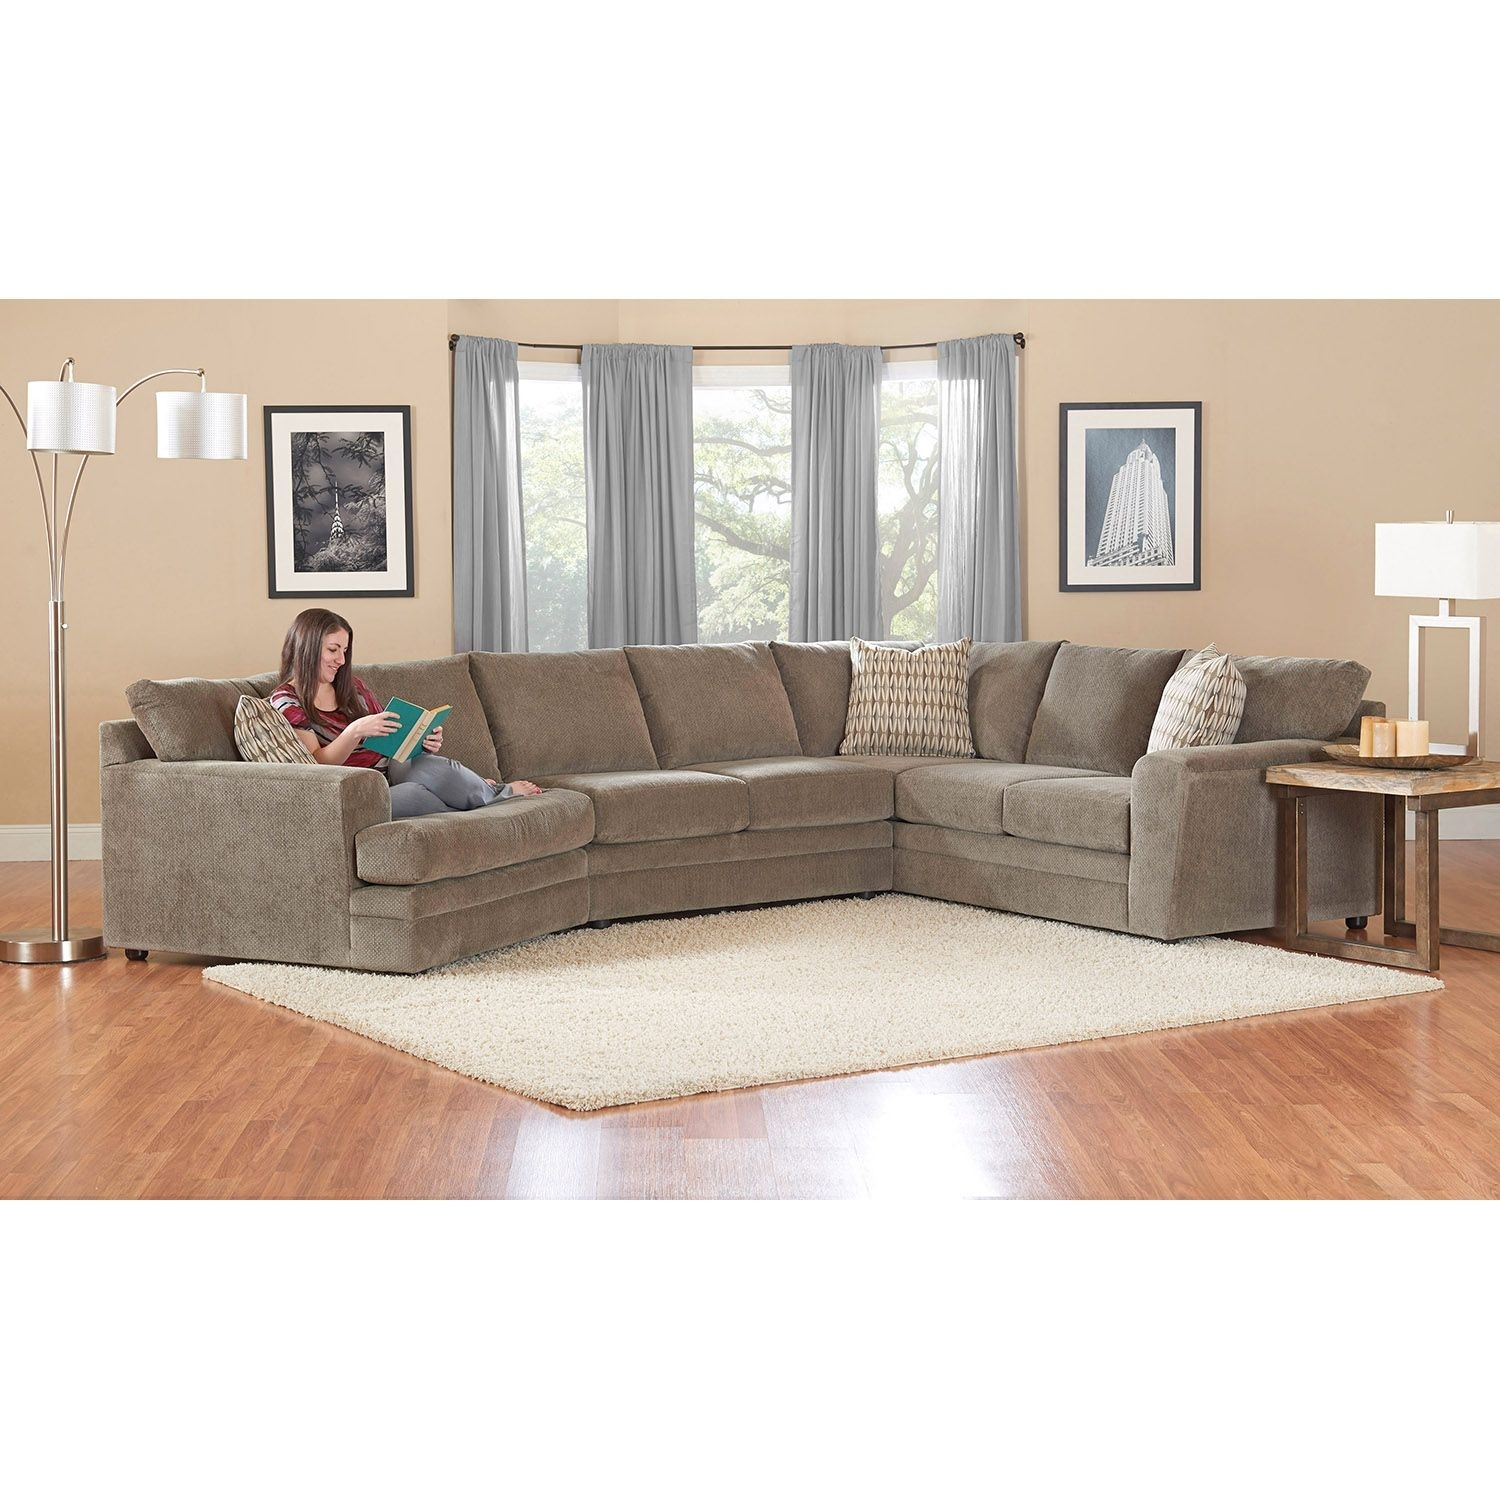 Prestige Ashburn Sectional Sofa – Sam's Club Gray Couch | Home Inside Sectional Sofas At Sam's Club (View 10 of 15)